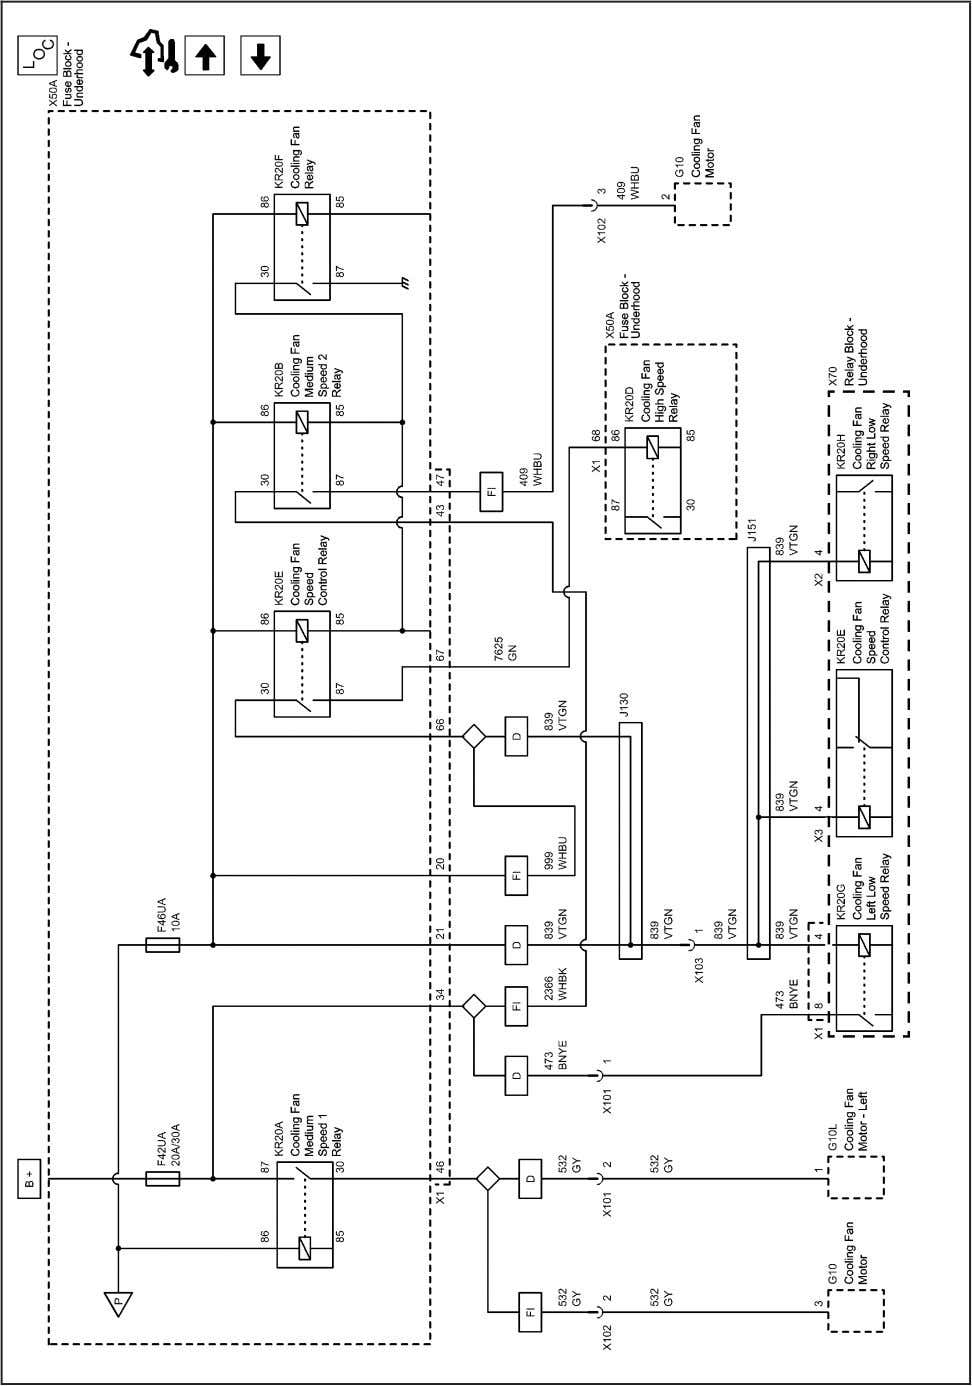 Systems and Power Management 2203136 Power Distribution Schematics (F42UA and F46UA Fuses) 2010 - Cruze Service